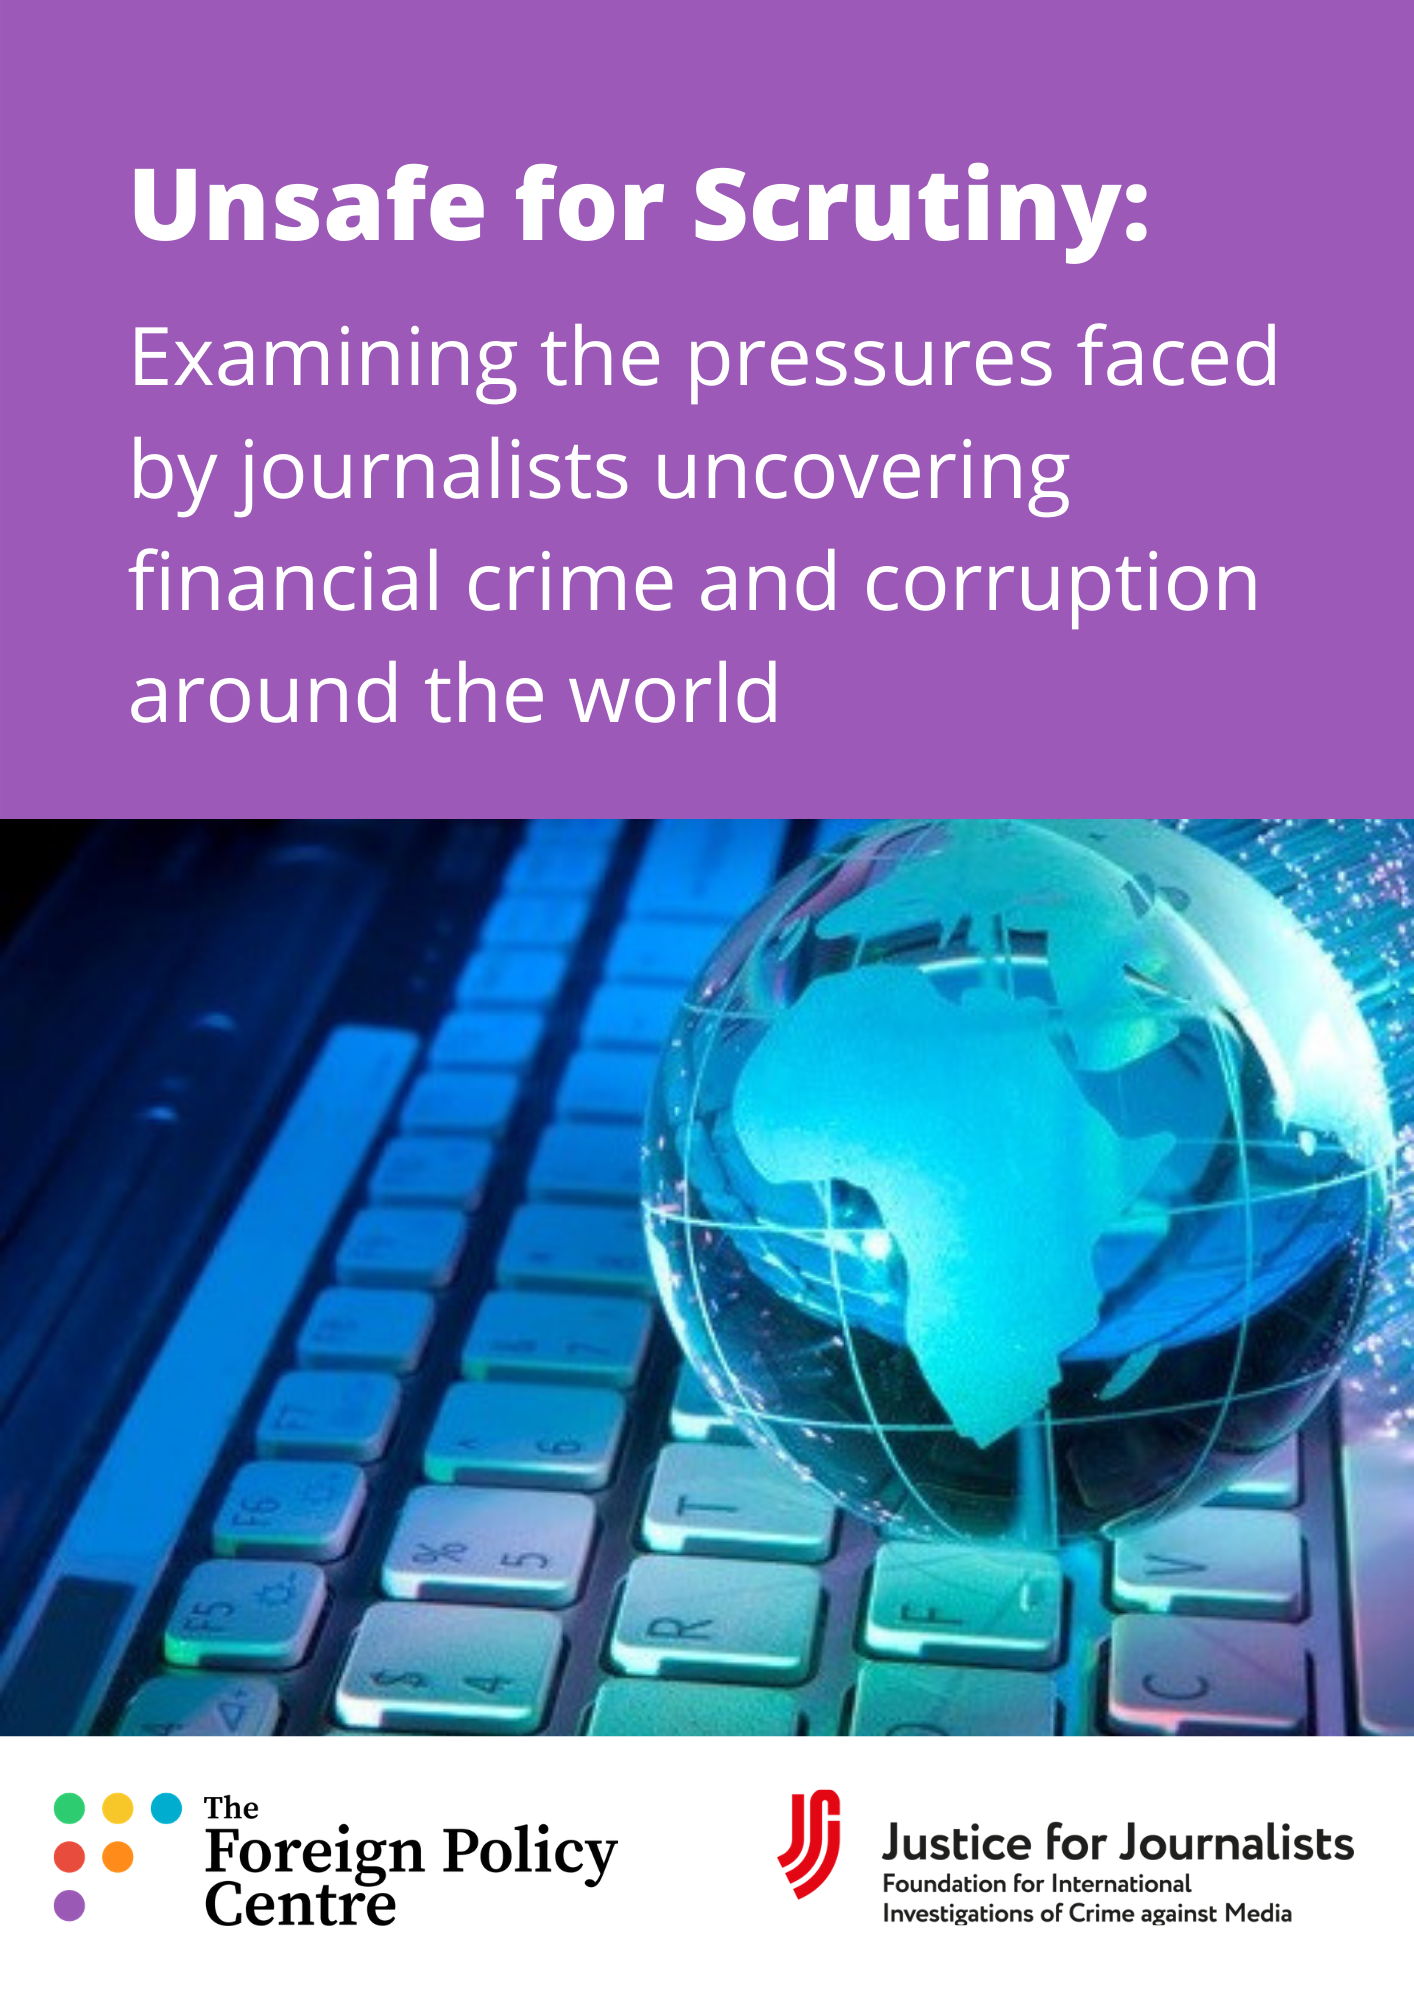 Unsafe for Scrutiny: Examining the pressures faced by journalists uncovering financial crime and corruption around the world